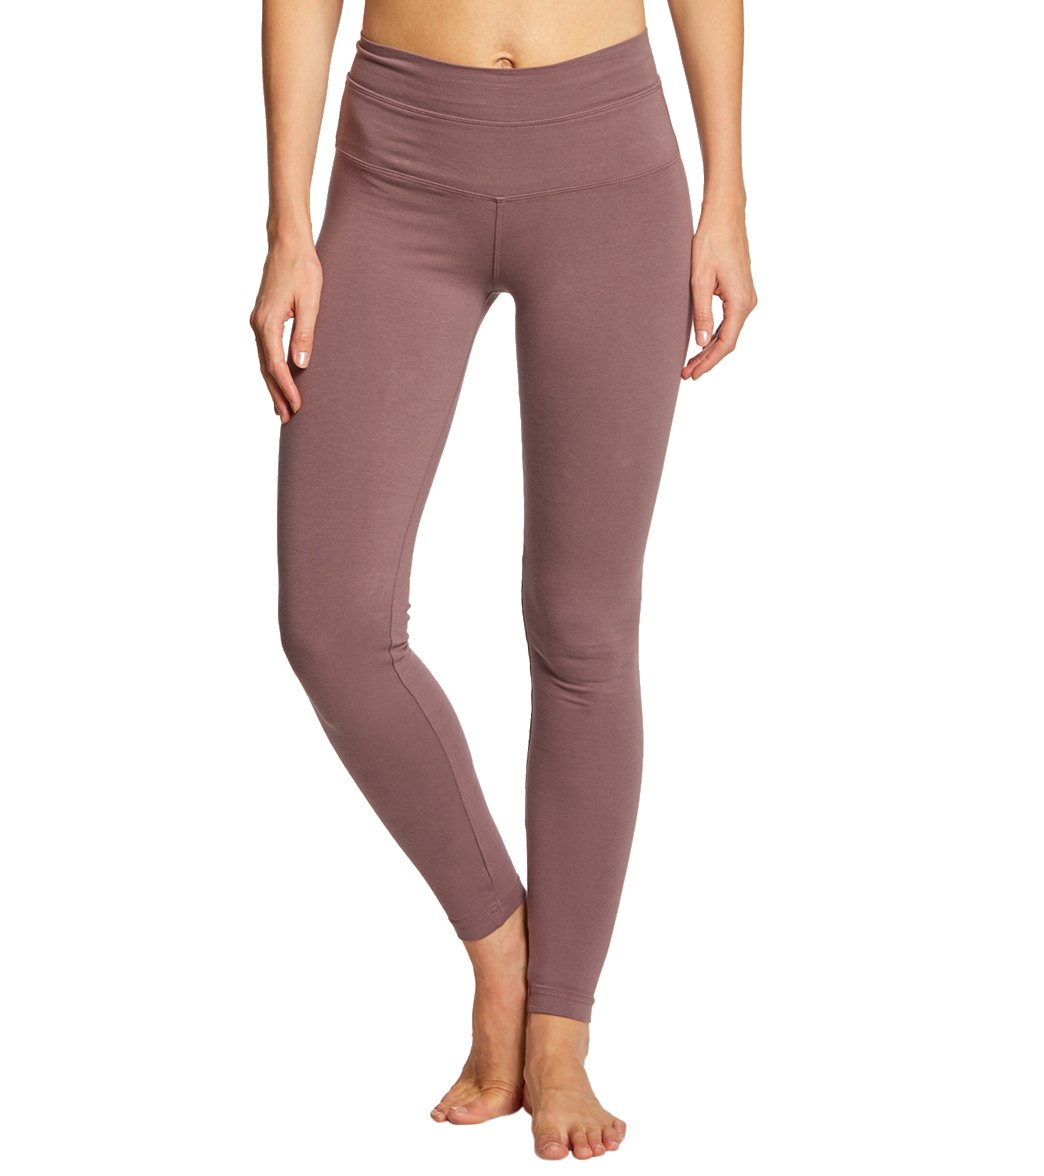 Hard Tail High Waisted Cotton Ankle Yoga Leggings - Nightshade